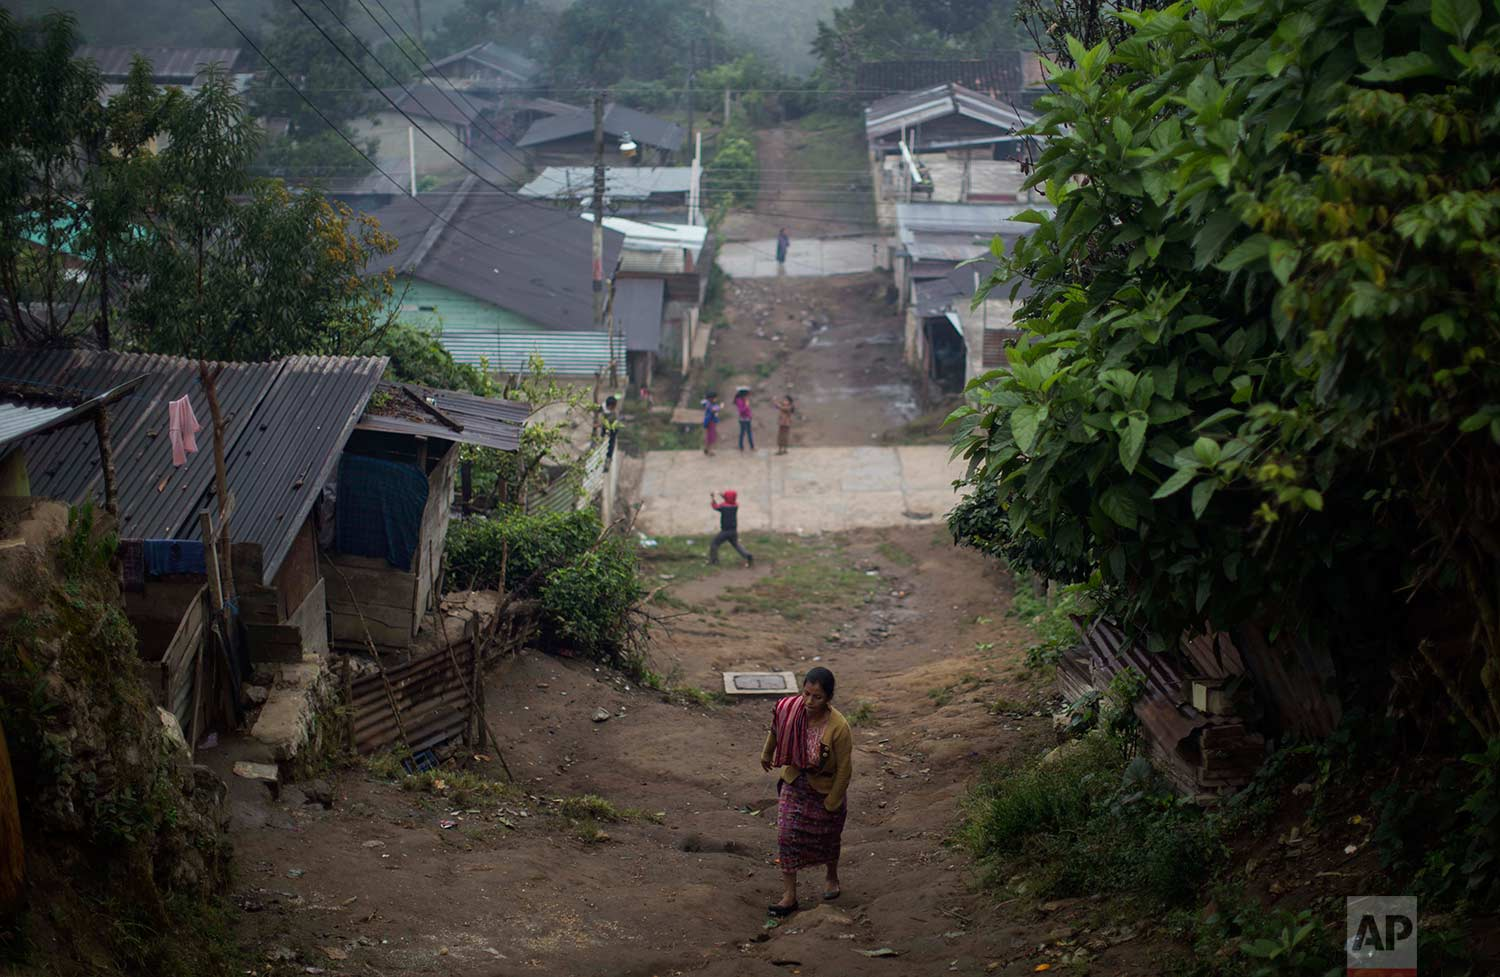 In this Nov. 30, 2017 photo, a woman walks up an unpaved road in the Ixil Mayan village of Santa Avelina, Guatemala. (AP Photo/Luis Soto)